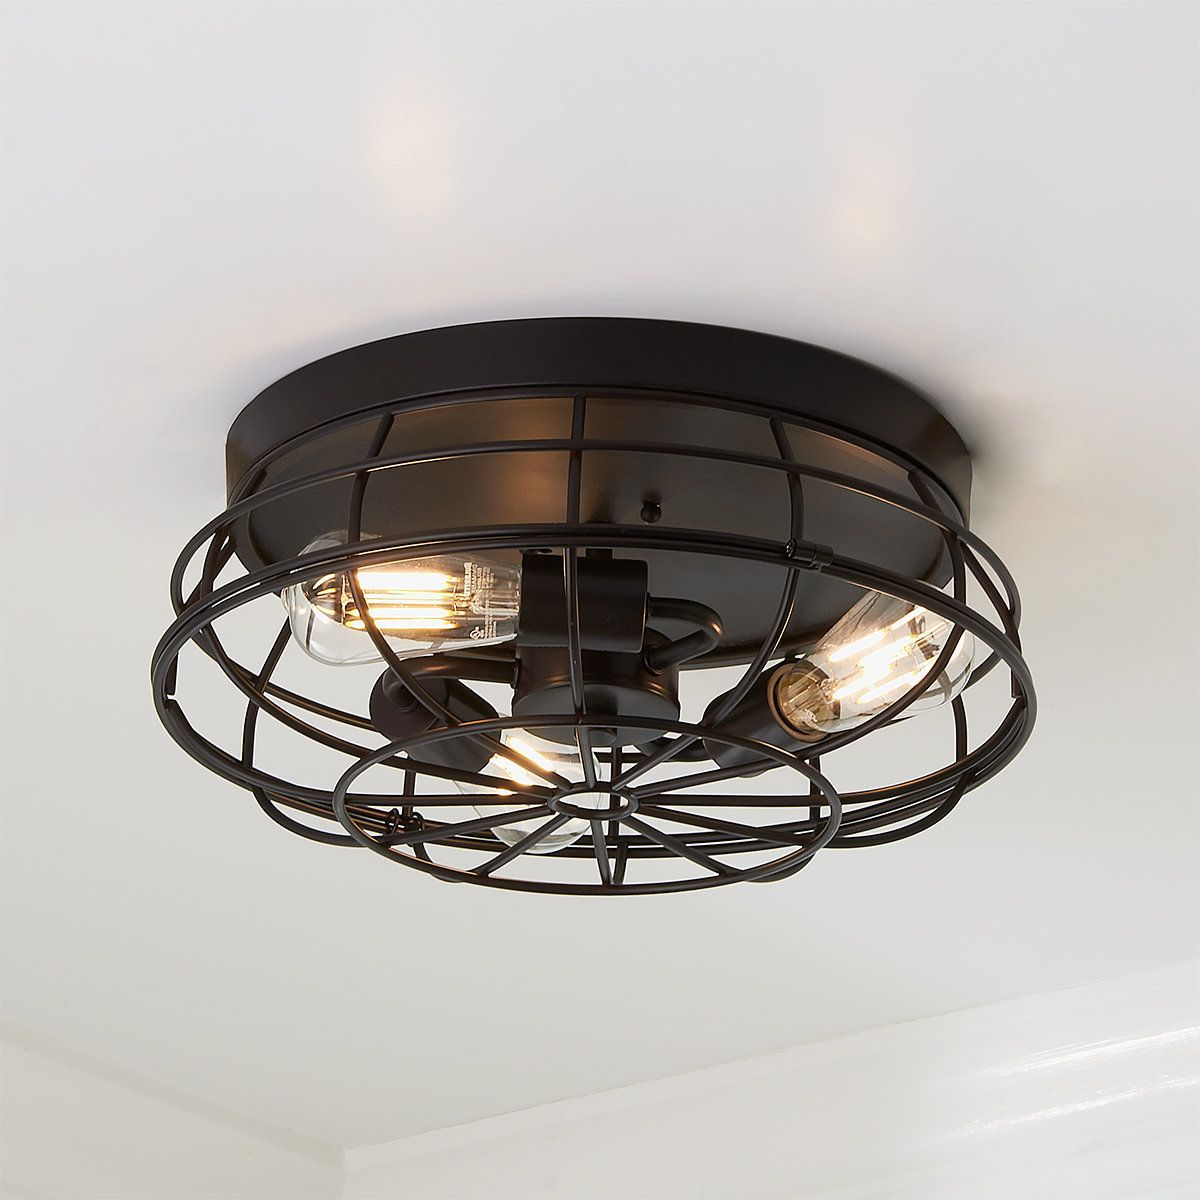 Industrial Grill Ceiling Light In 2021 Low Ceiling Lighting Flush Mount Ceiling Lights Ceiling Lights